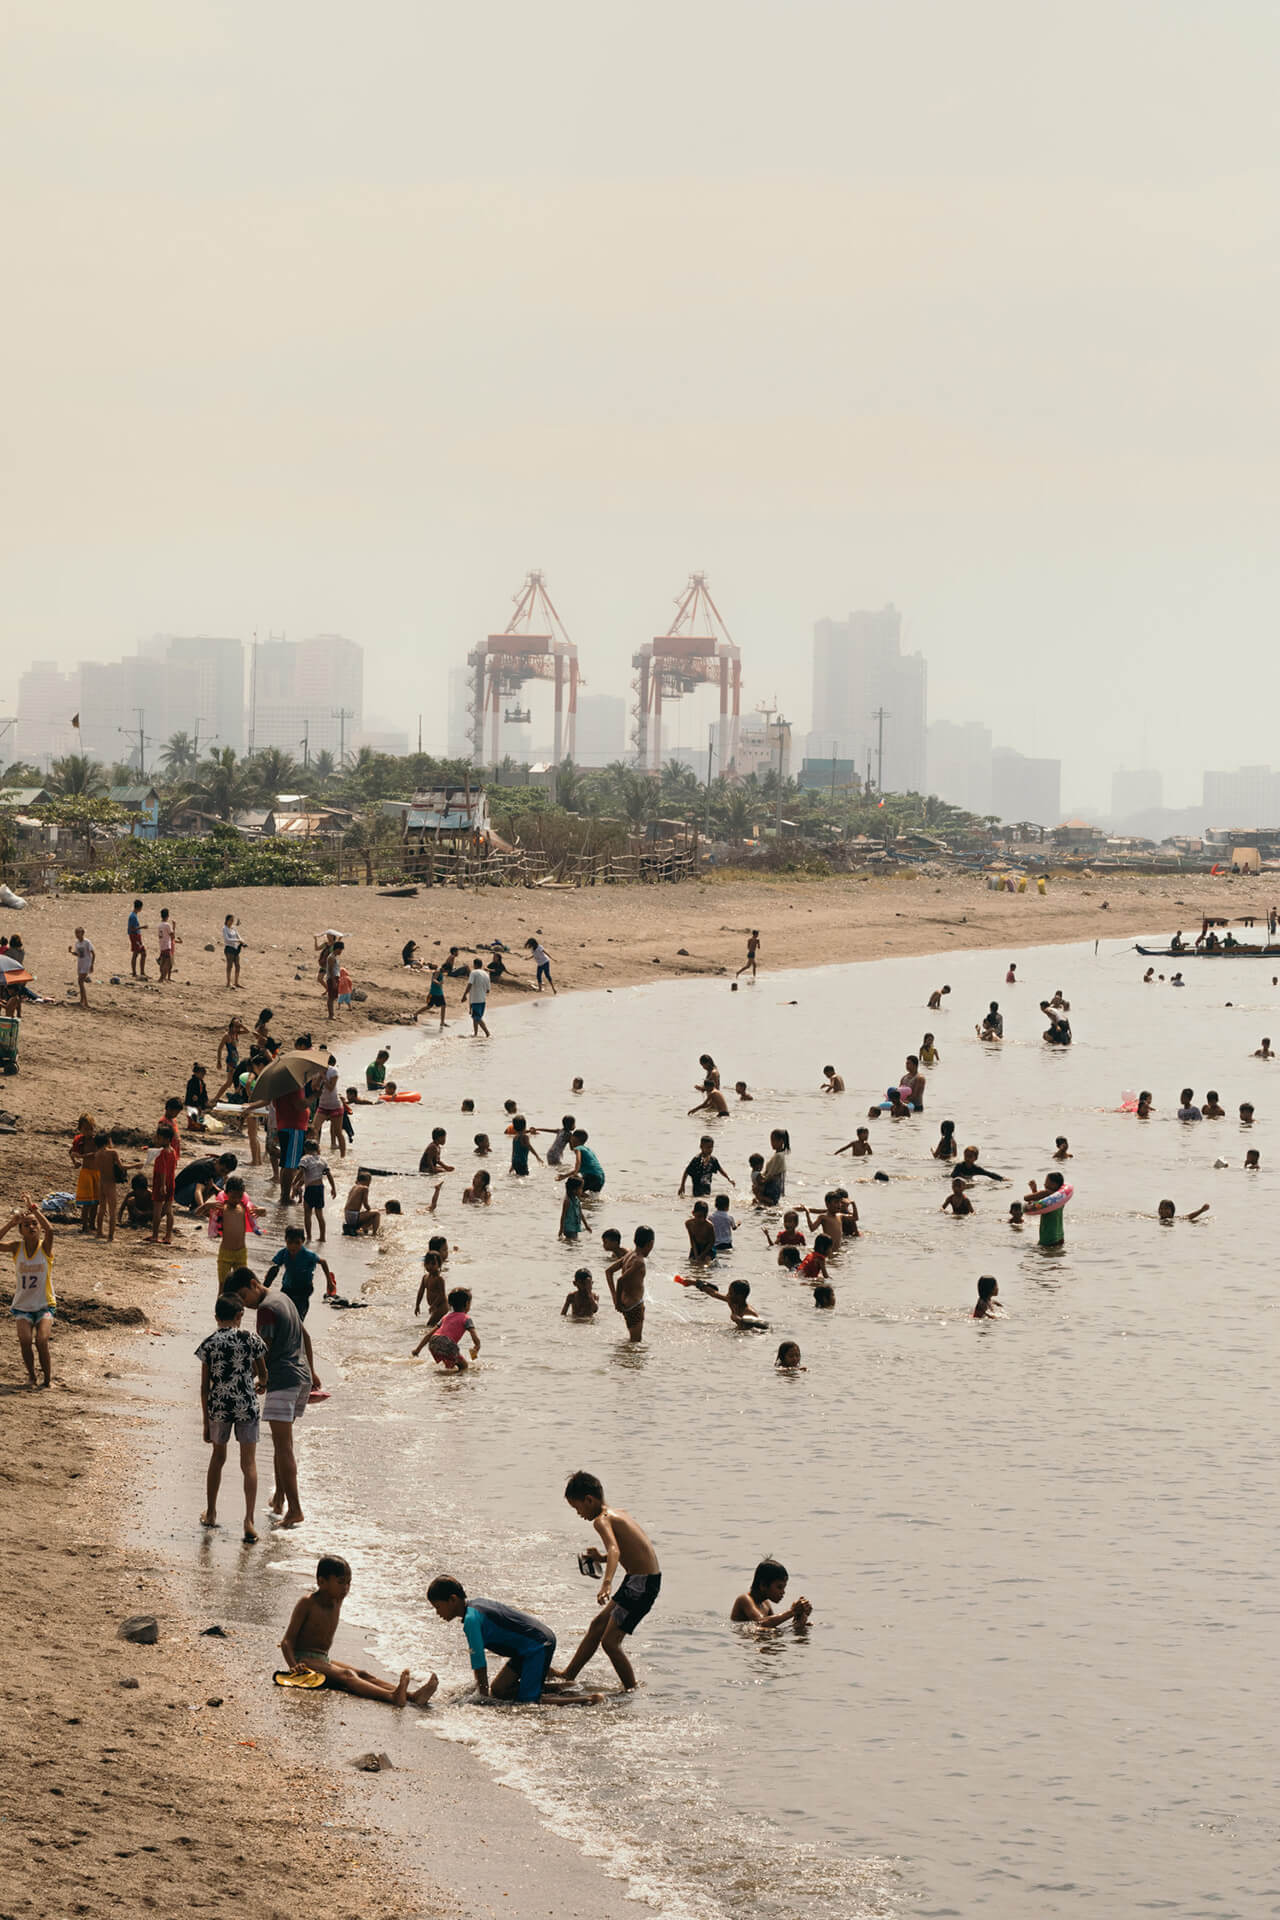 A cleaner Manila Bay with locals relaxing by the shore and shallows.